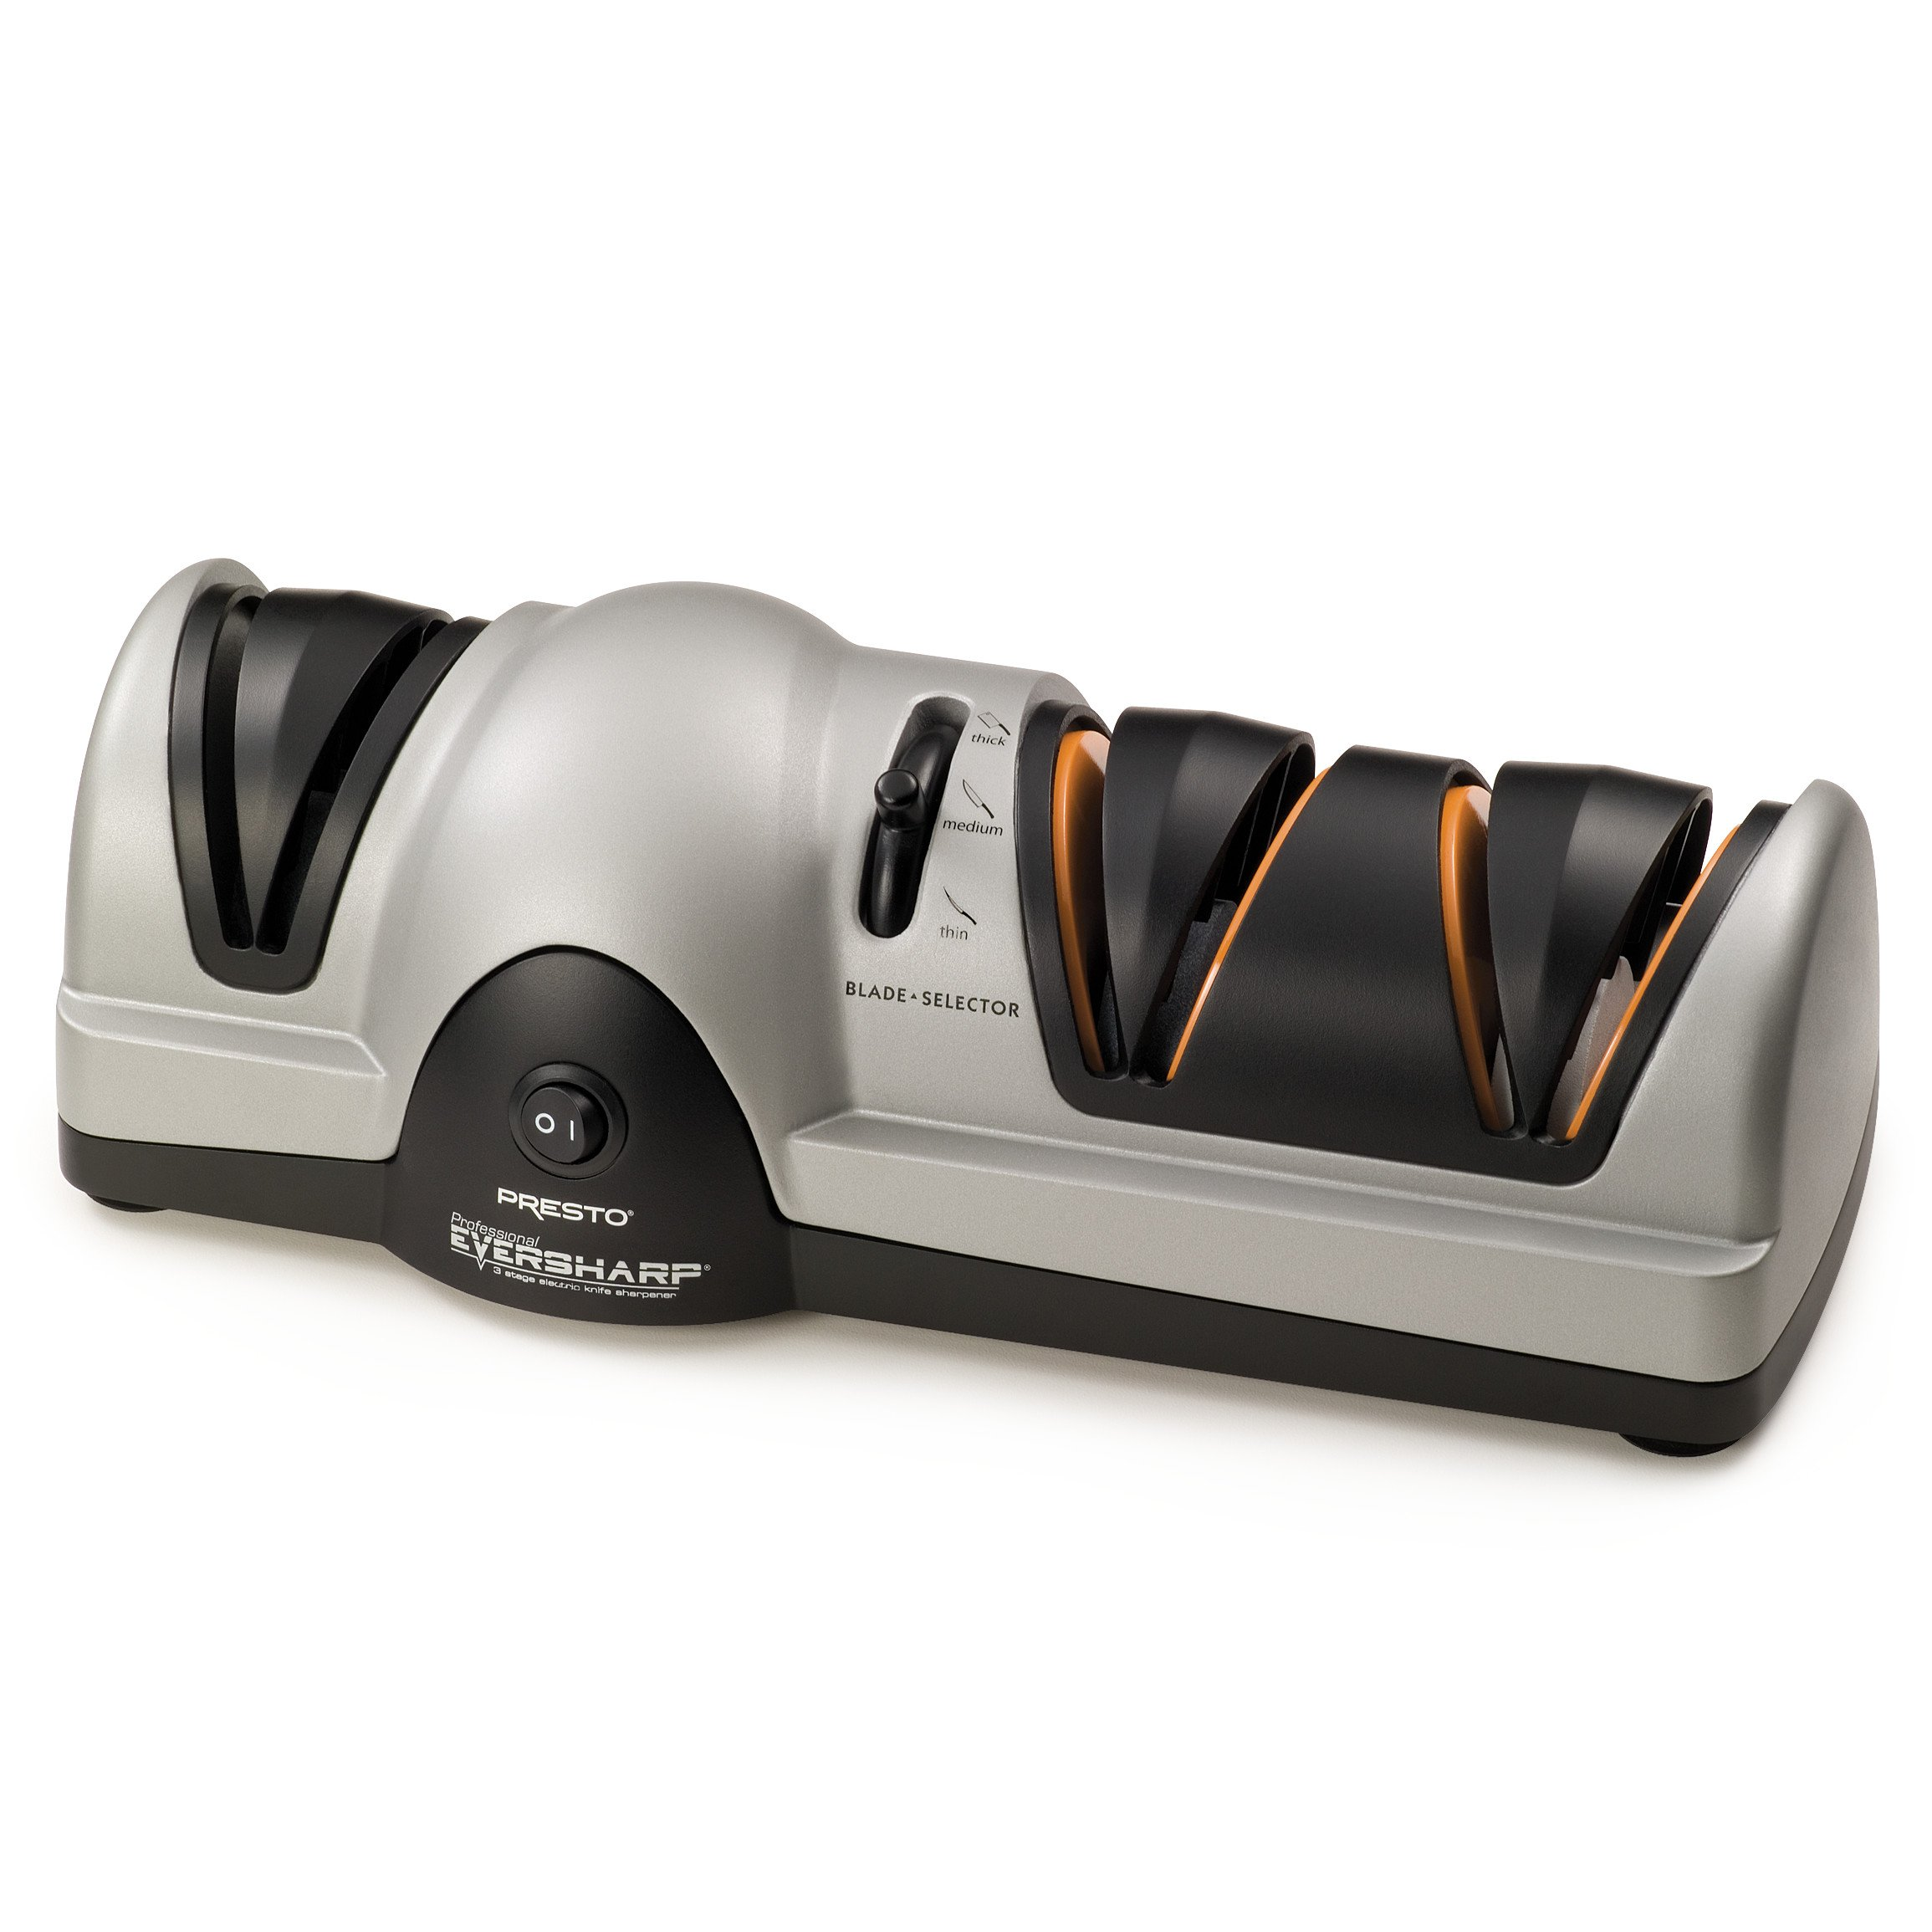 Presto 08810 Professional Electric Knife Sharpener by Presto